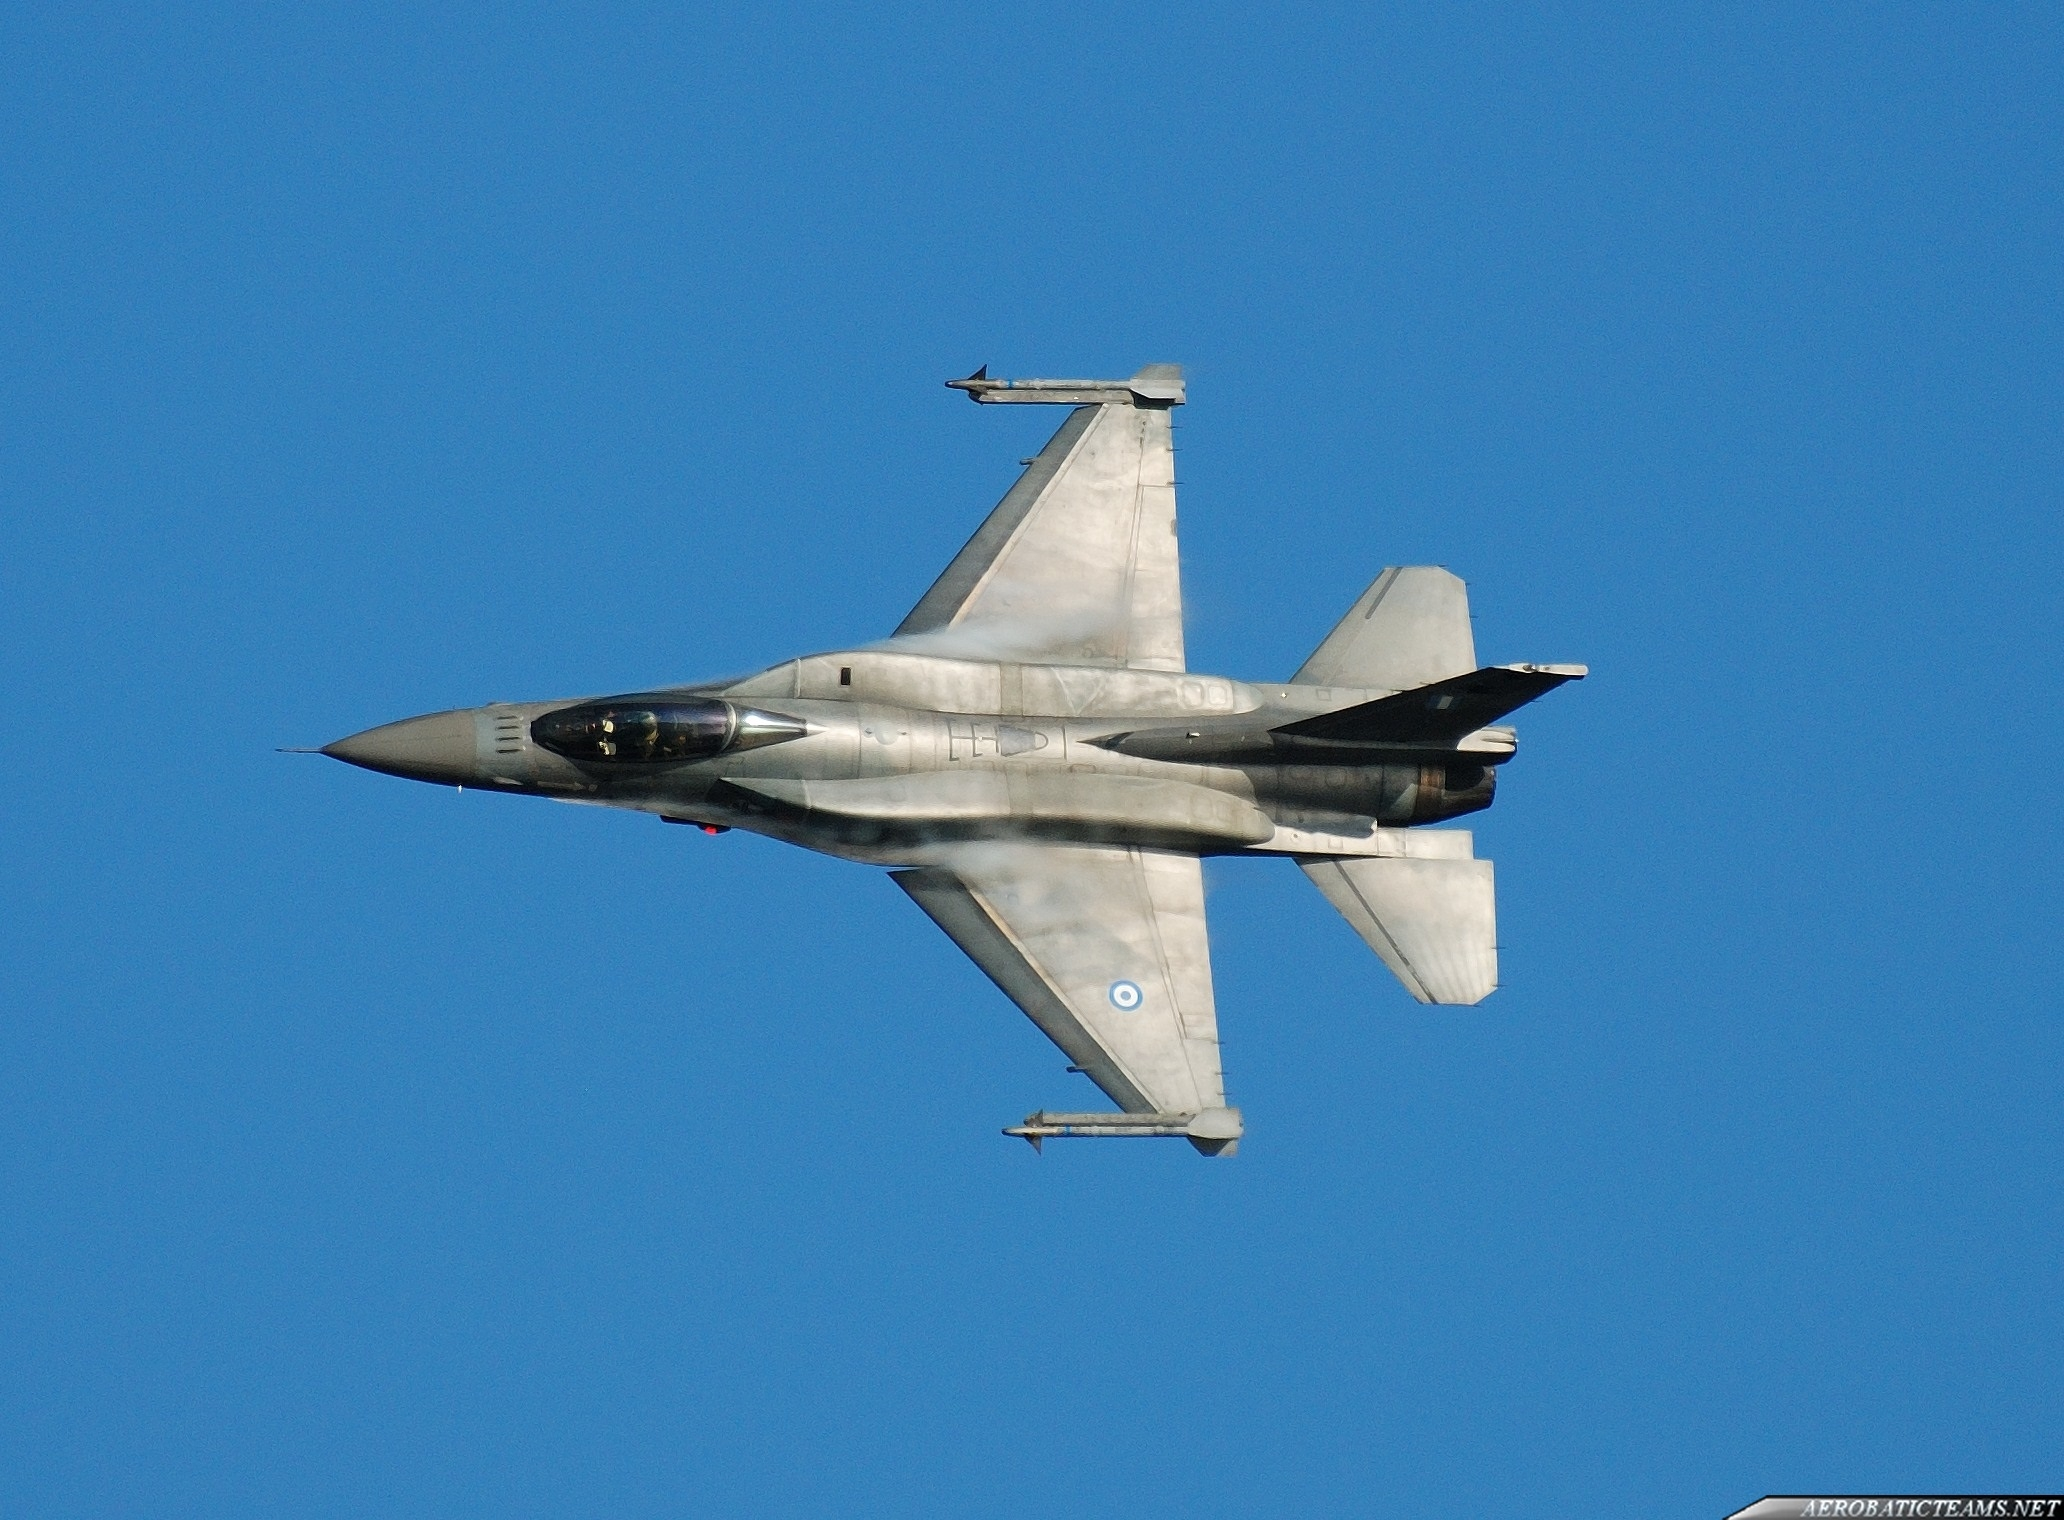 Hellenic Air Force F-16A Block 52+